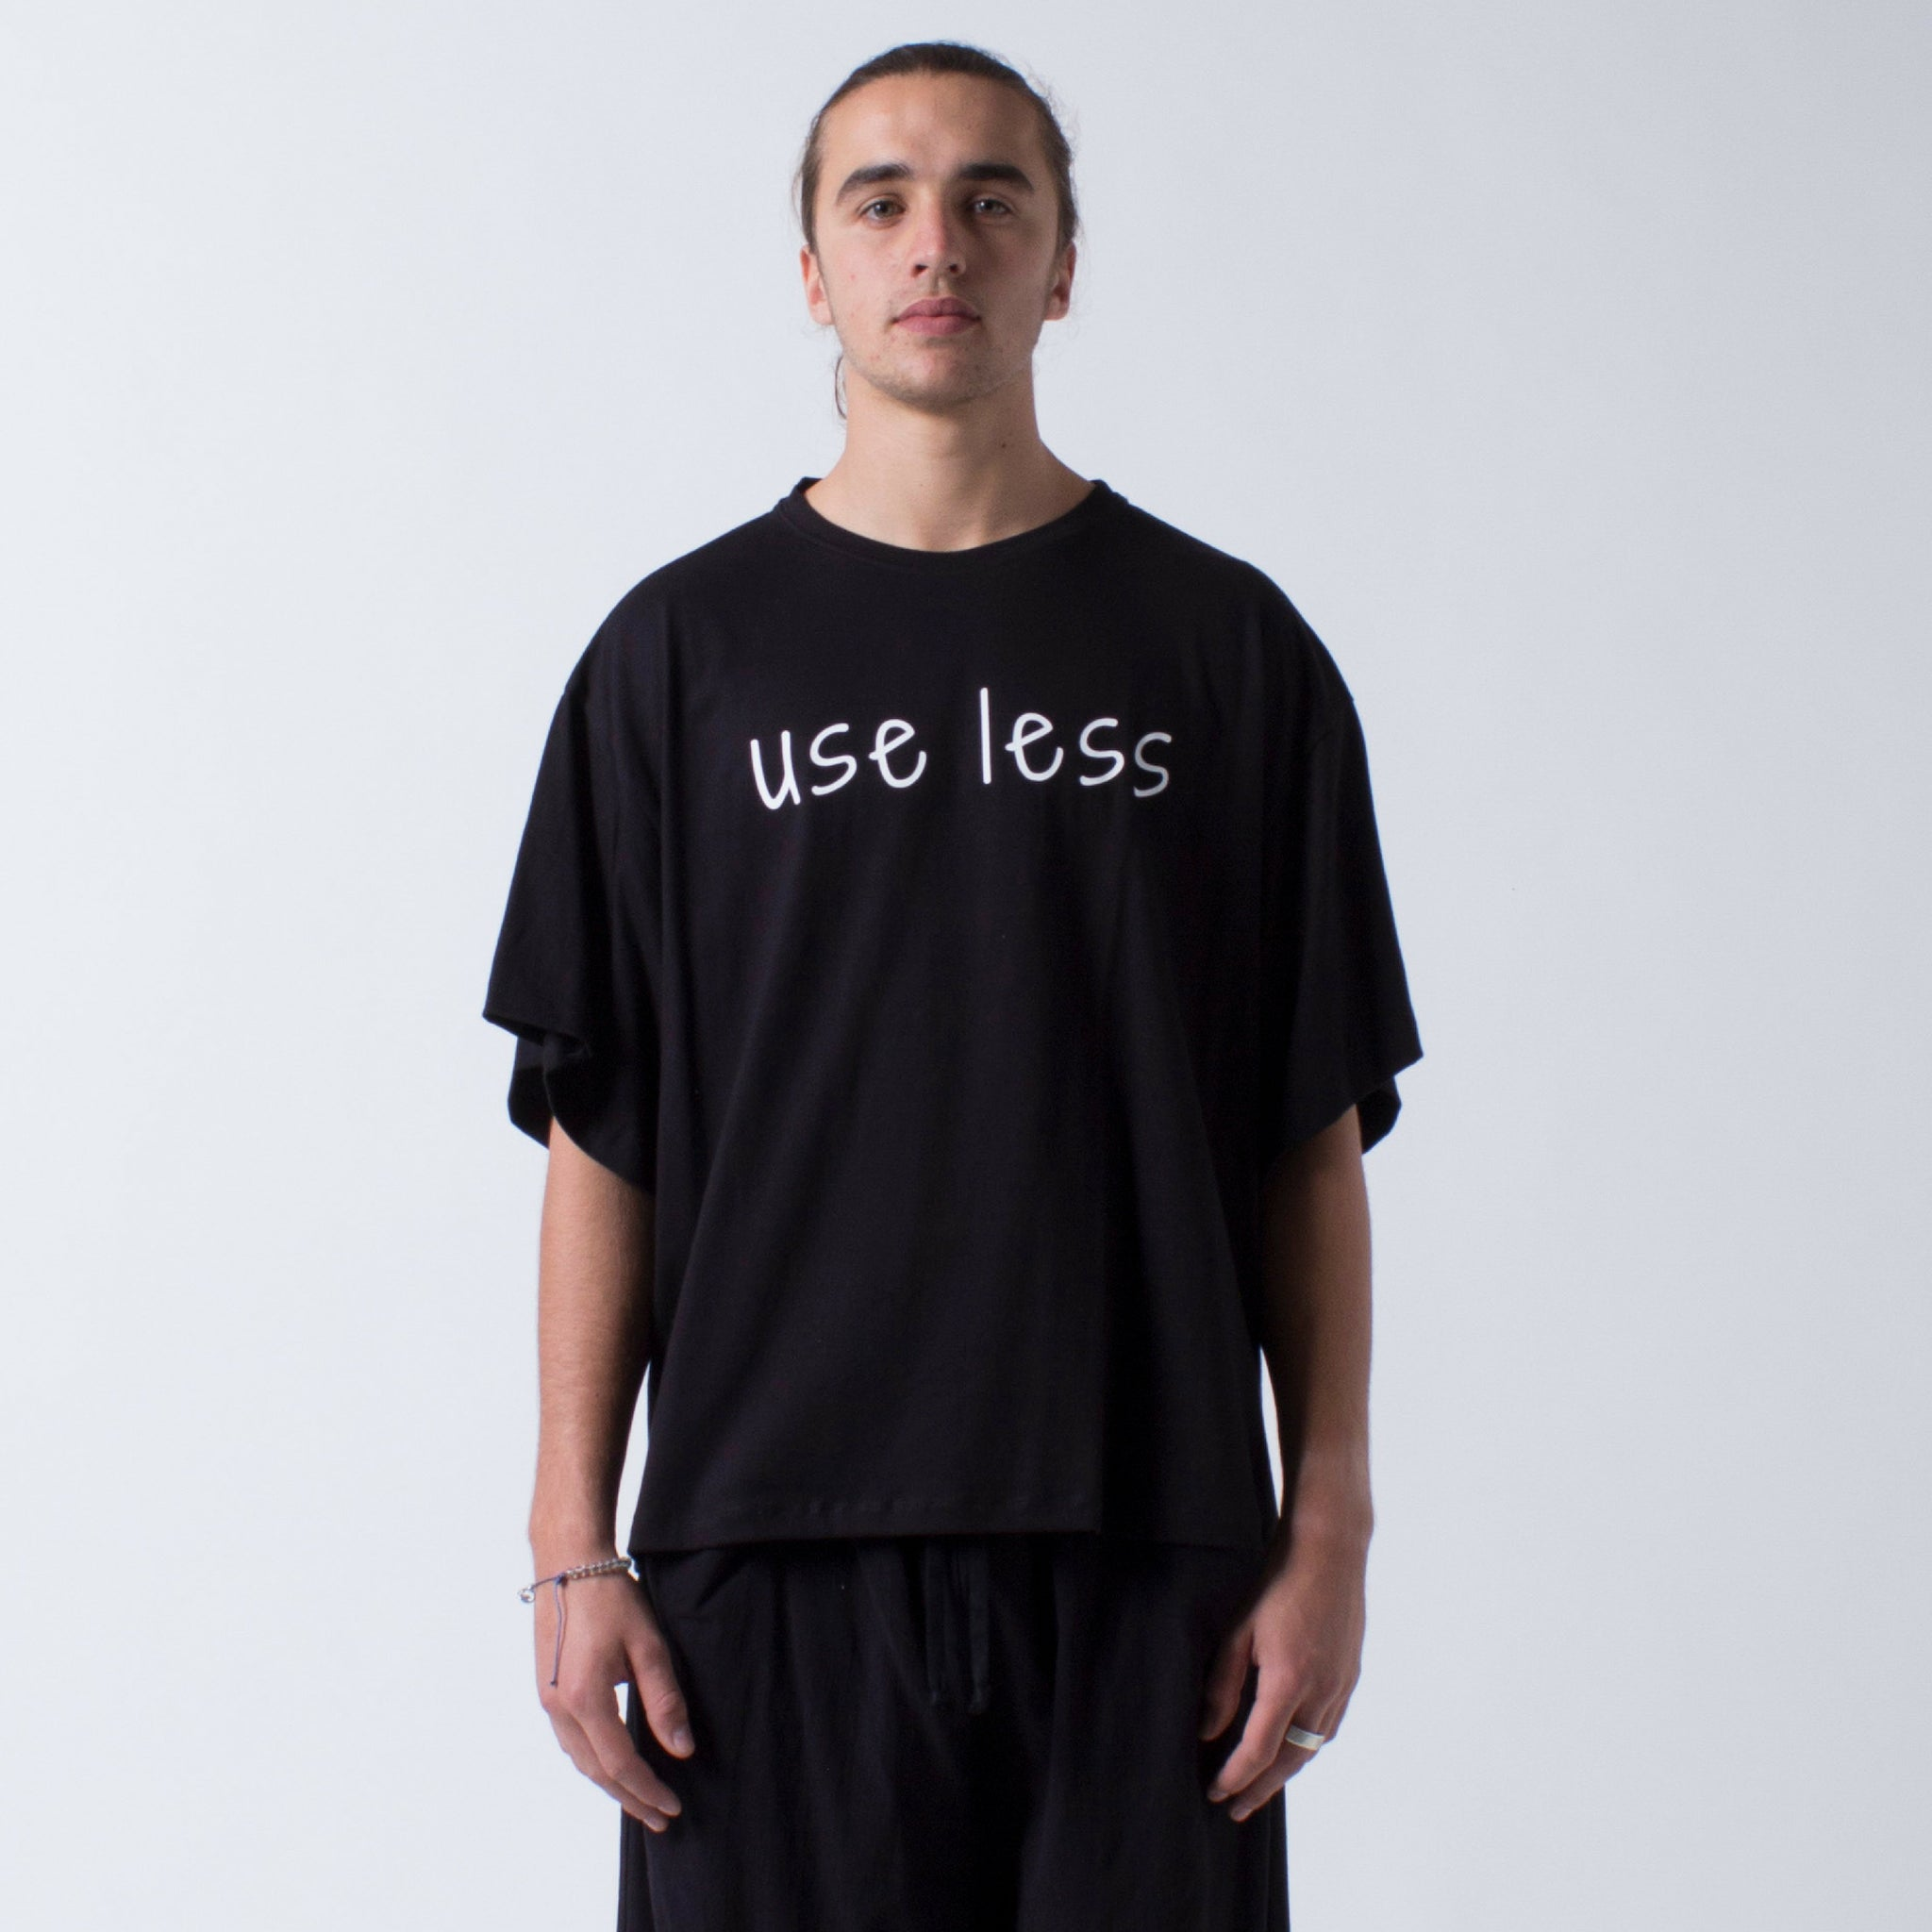 Baggy Tee 'use less' screenprint